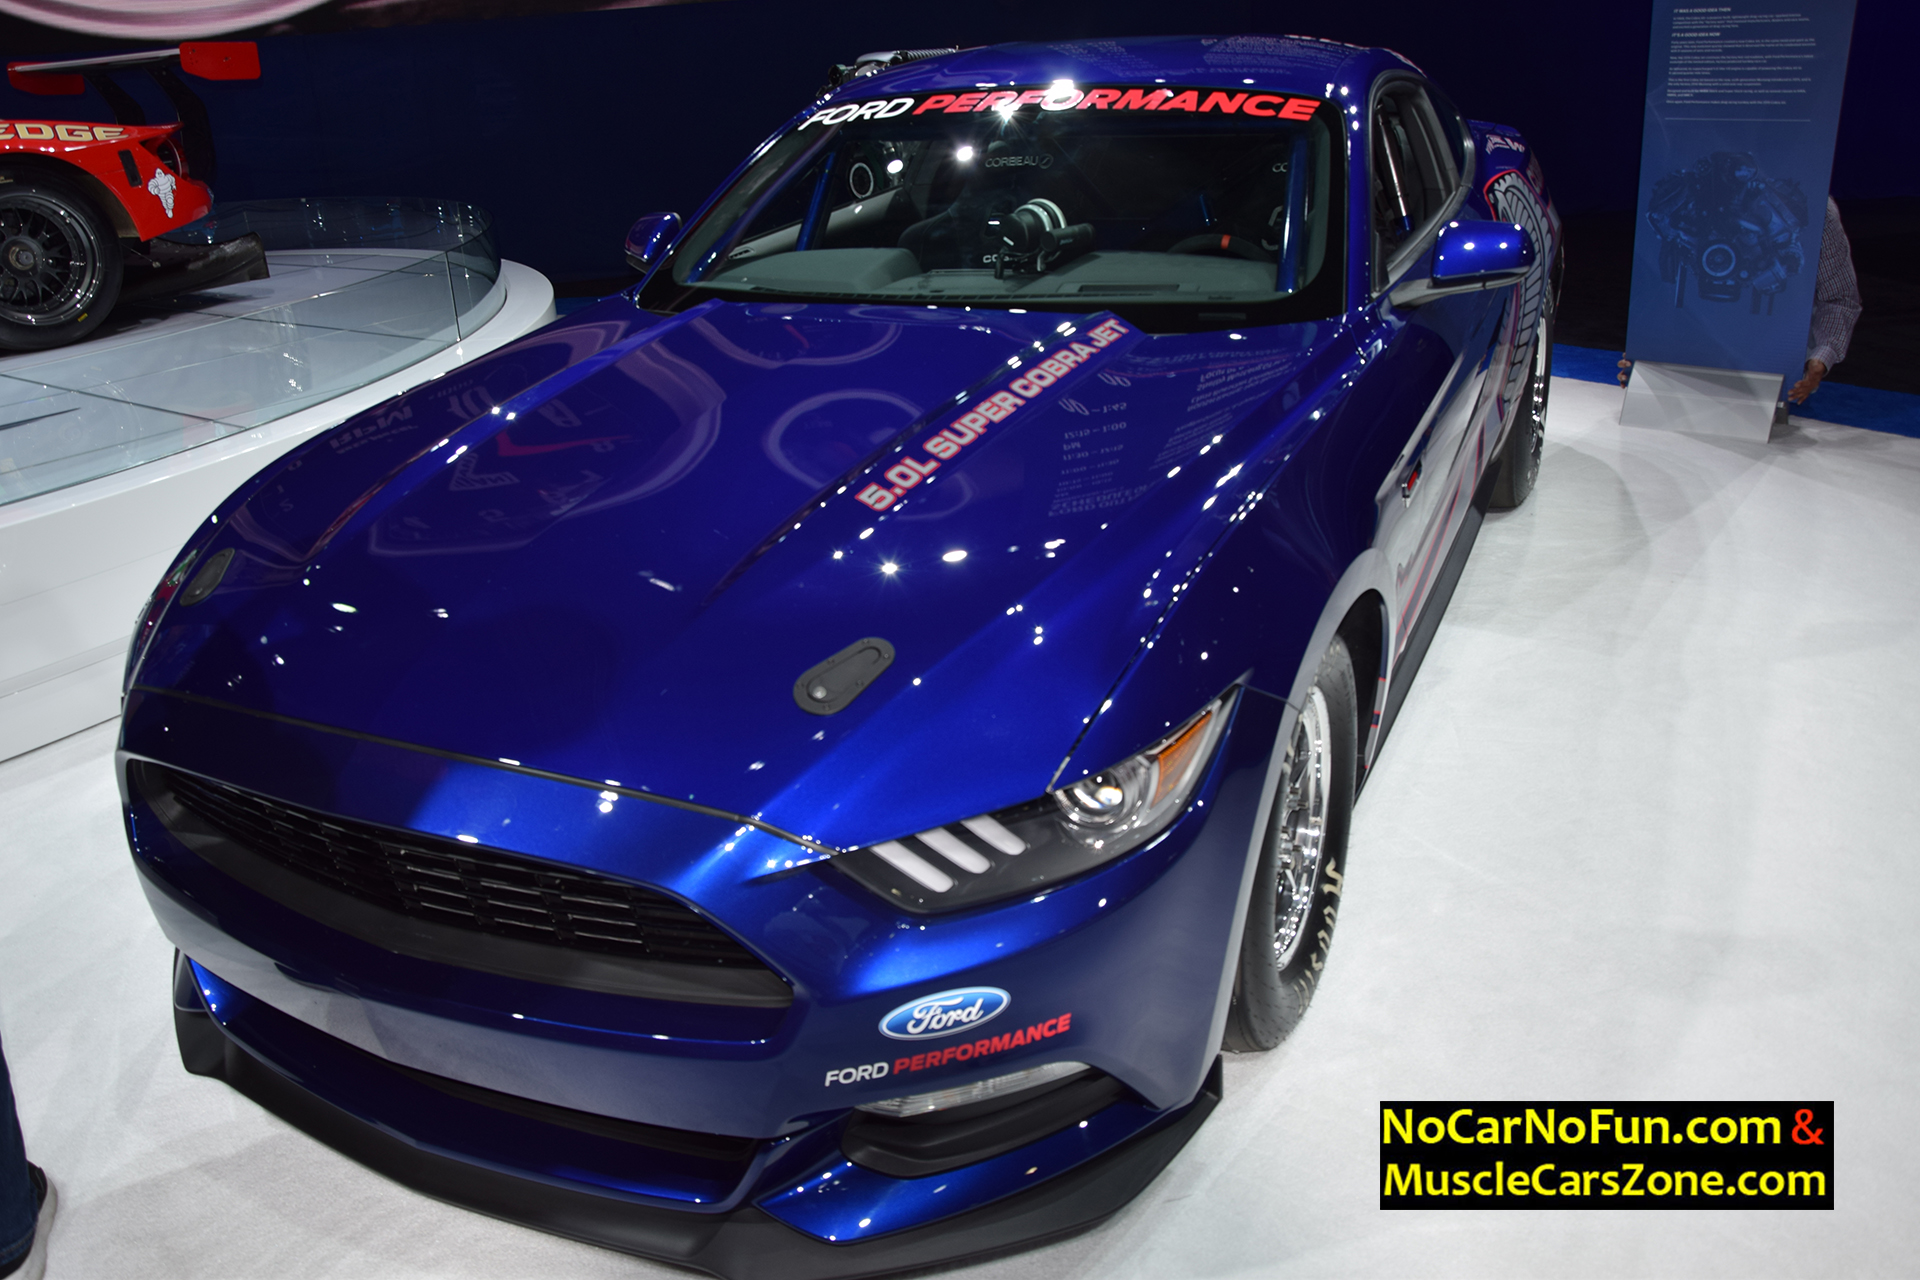 2016 ford mustang shelby cobra jet 2015 sema motor show 2 muscle cars zone. Black Bedroom Furniture Sets. Home Design Ideas